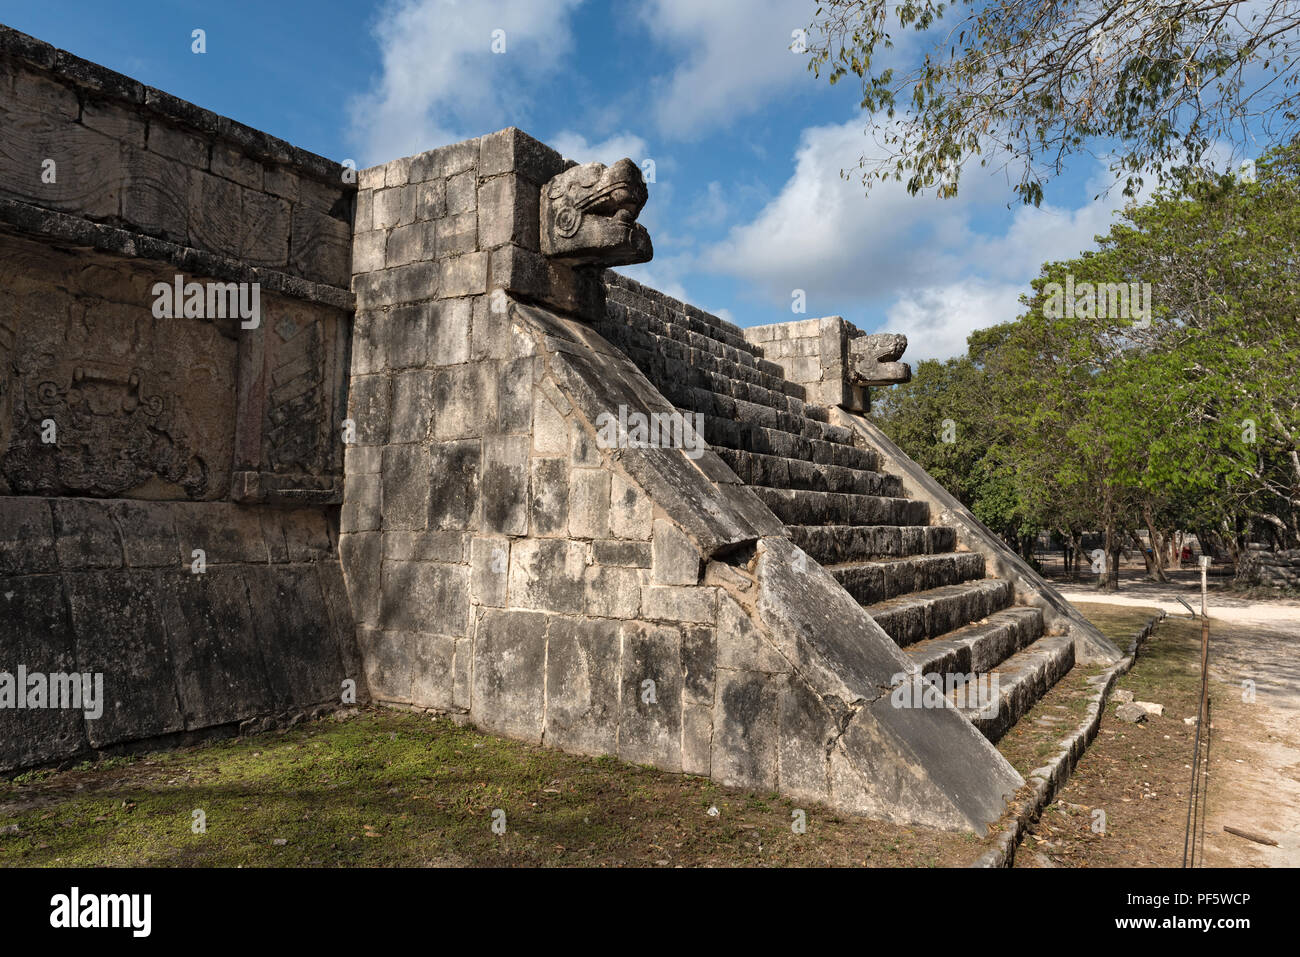 Historical ruins of the ancient Mayan city of Chichen Itza, Yucatan, Mexico. - Stock Image